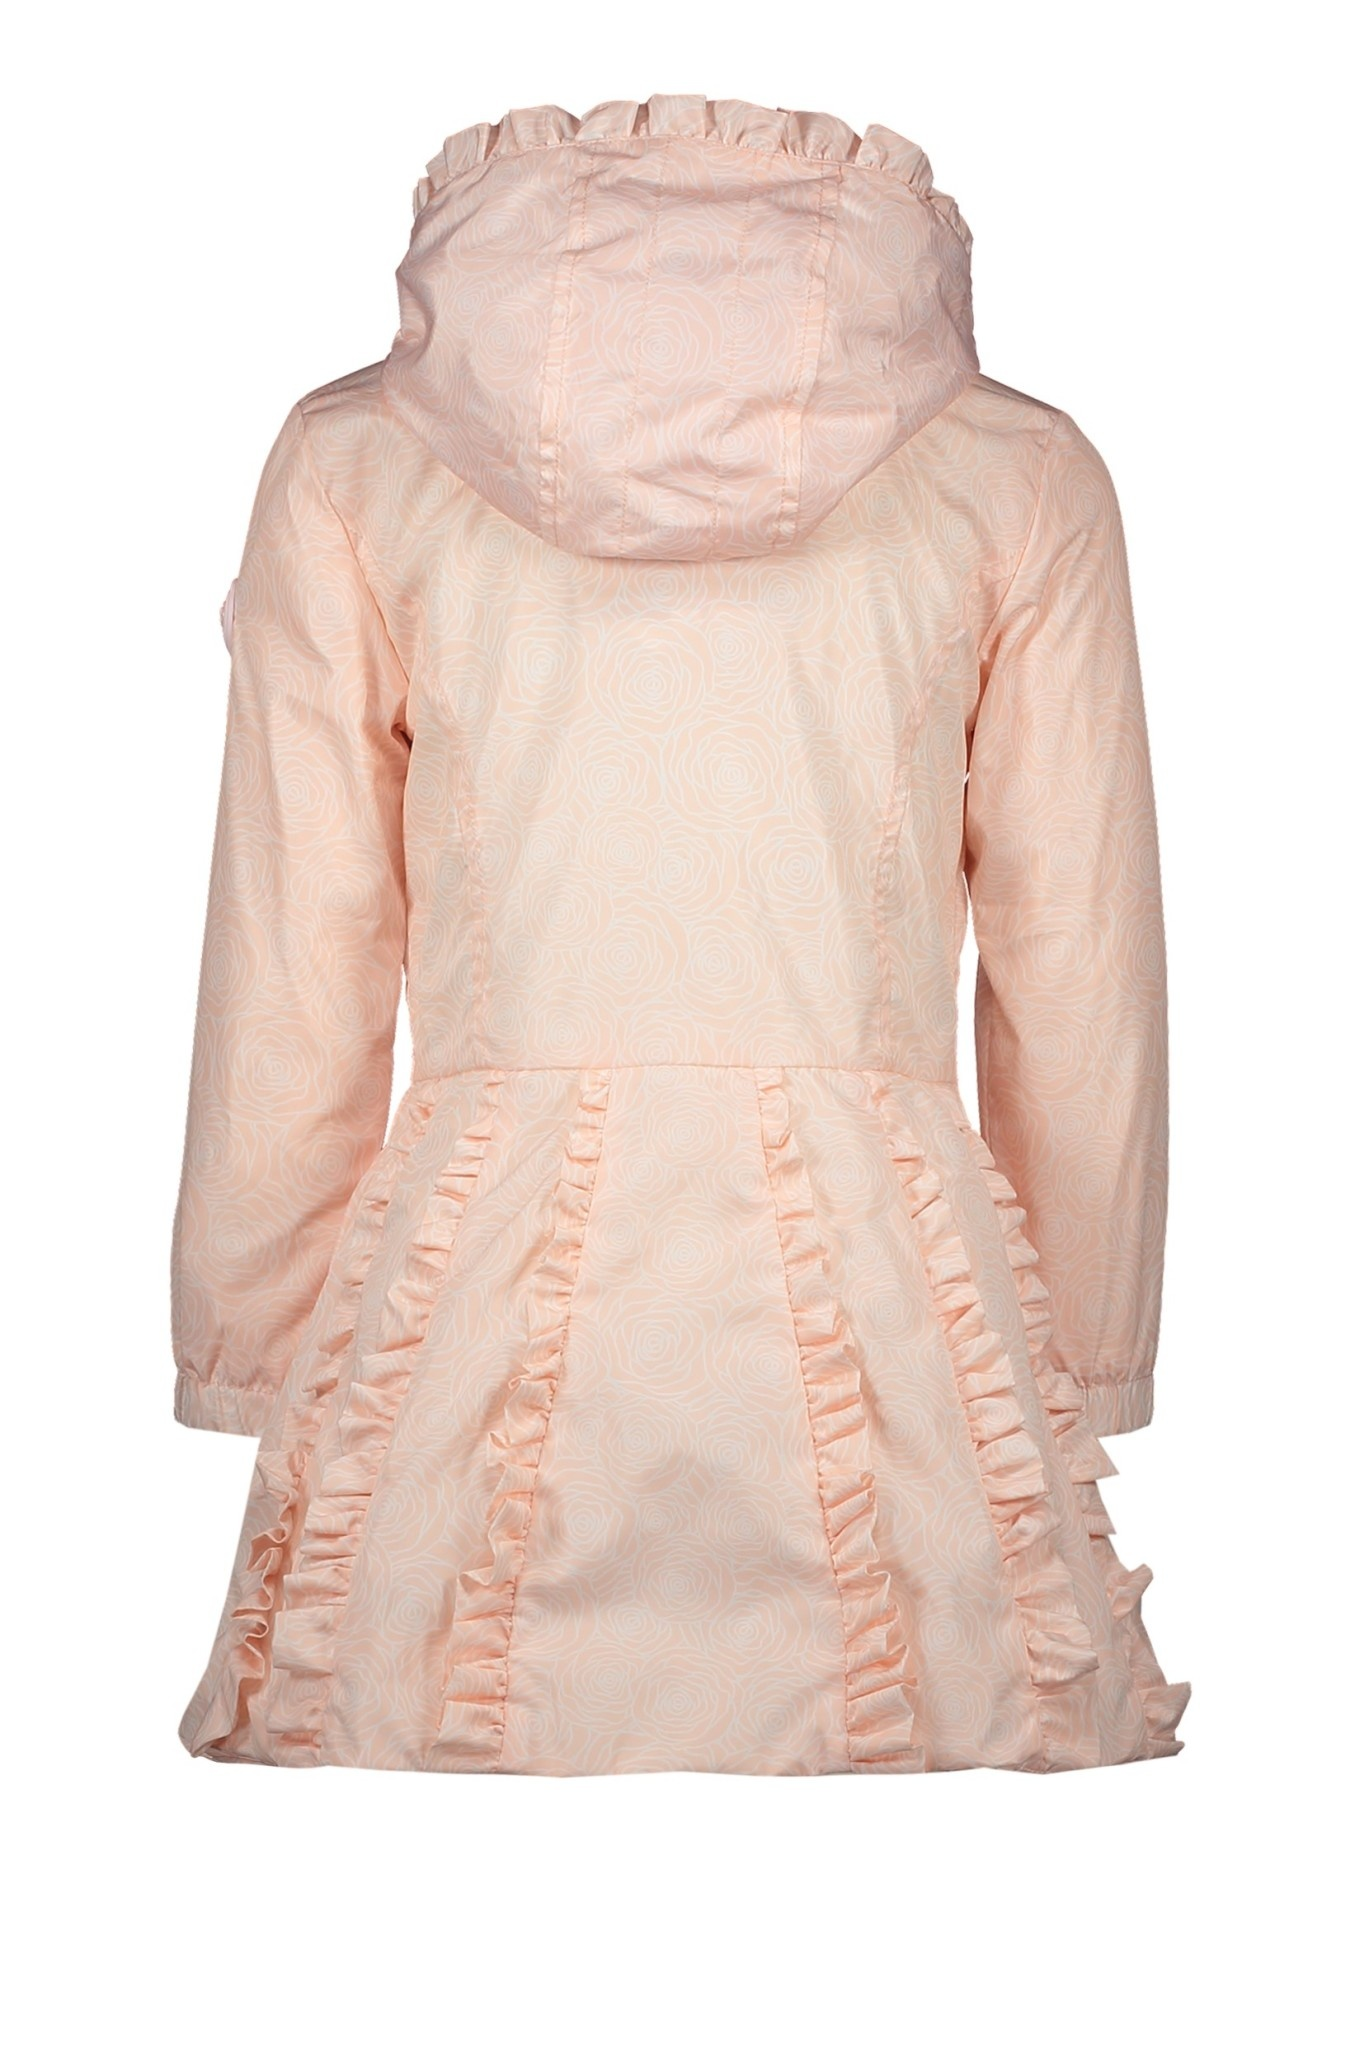 Lechic Le Chic Field Of Roses Coat 5203